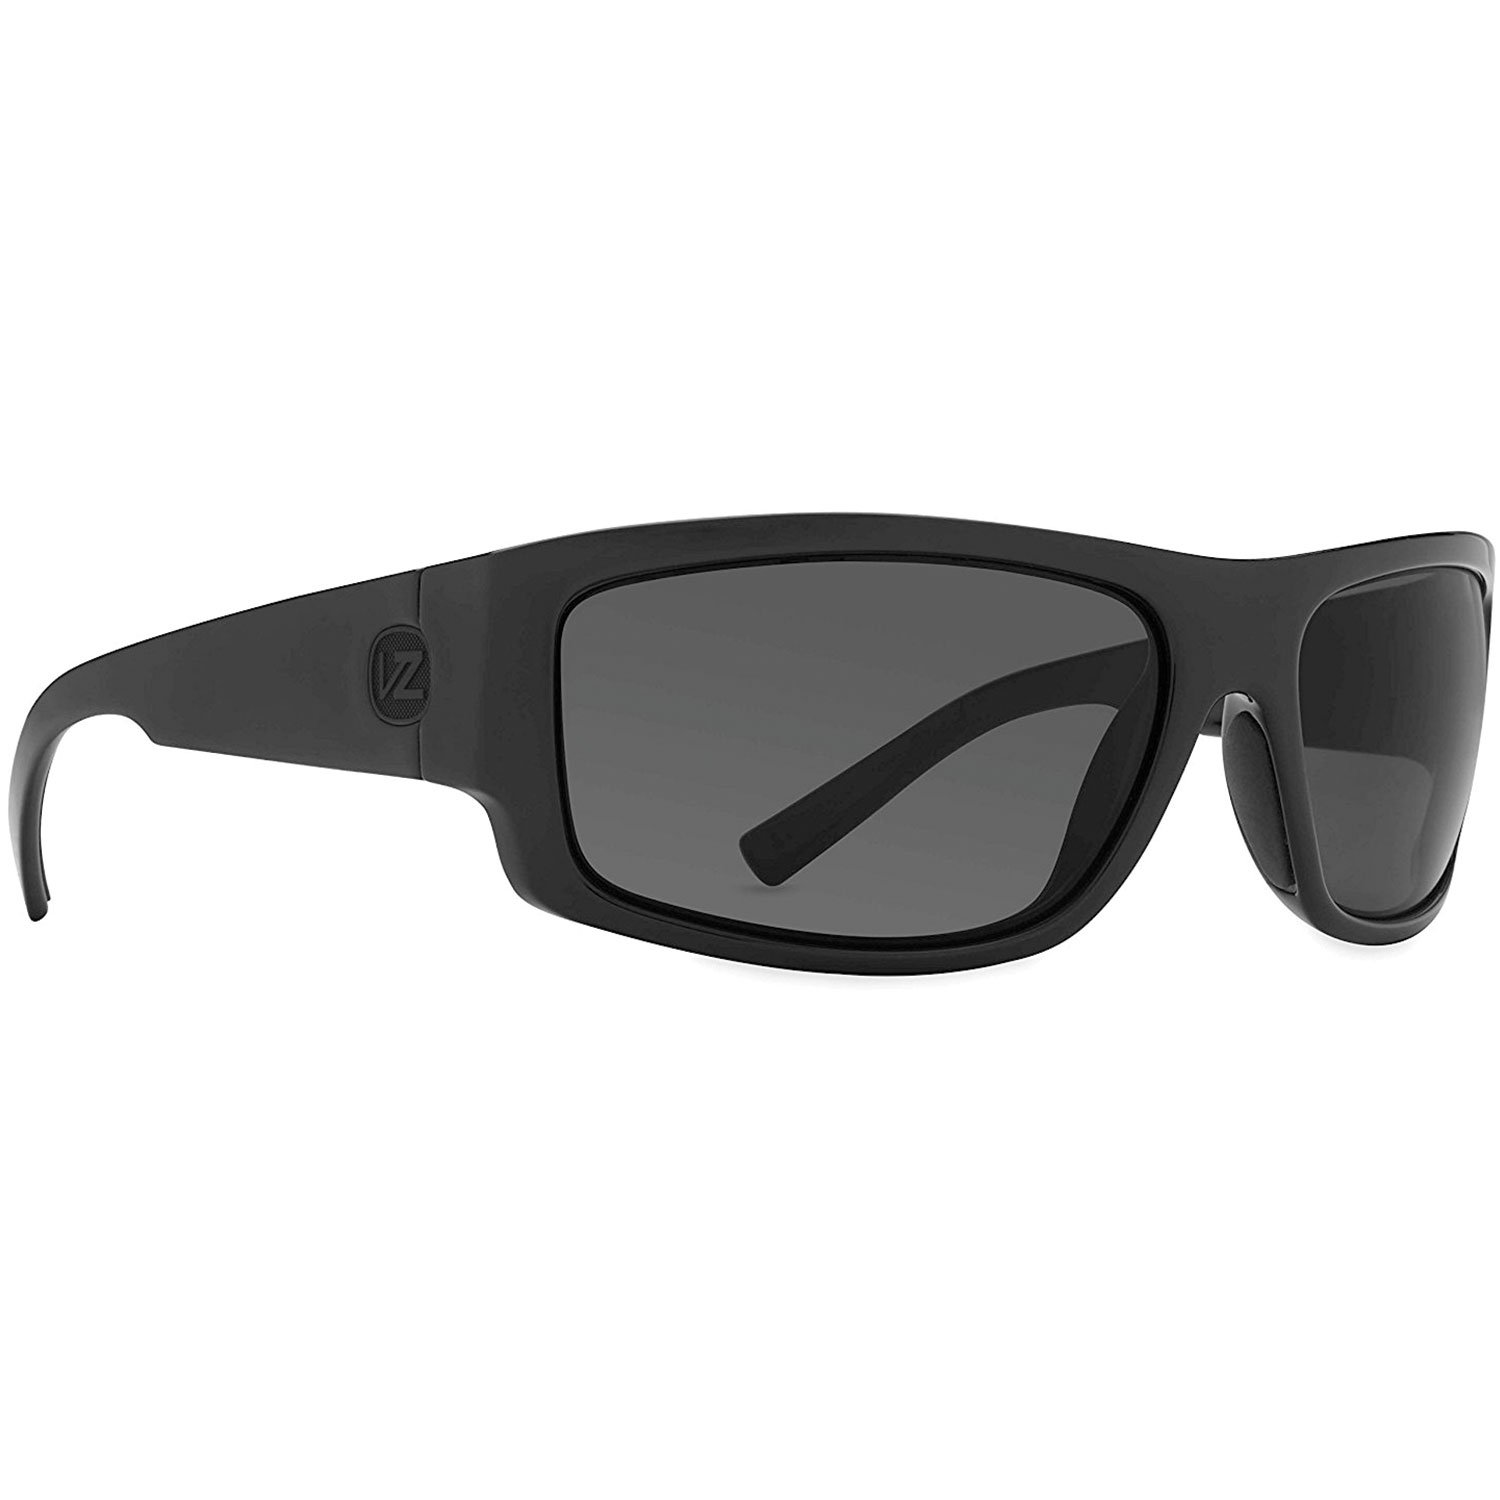 VON ZIPPER SEMI SUNGLASSES Black Satin-Grey Wildlife Polarized LensAUTHENTIC by Unknown